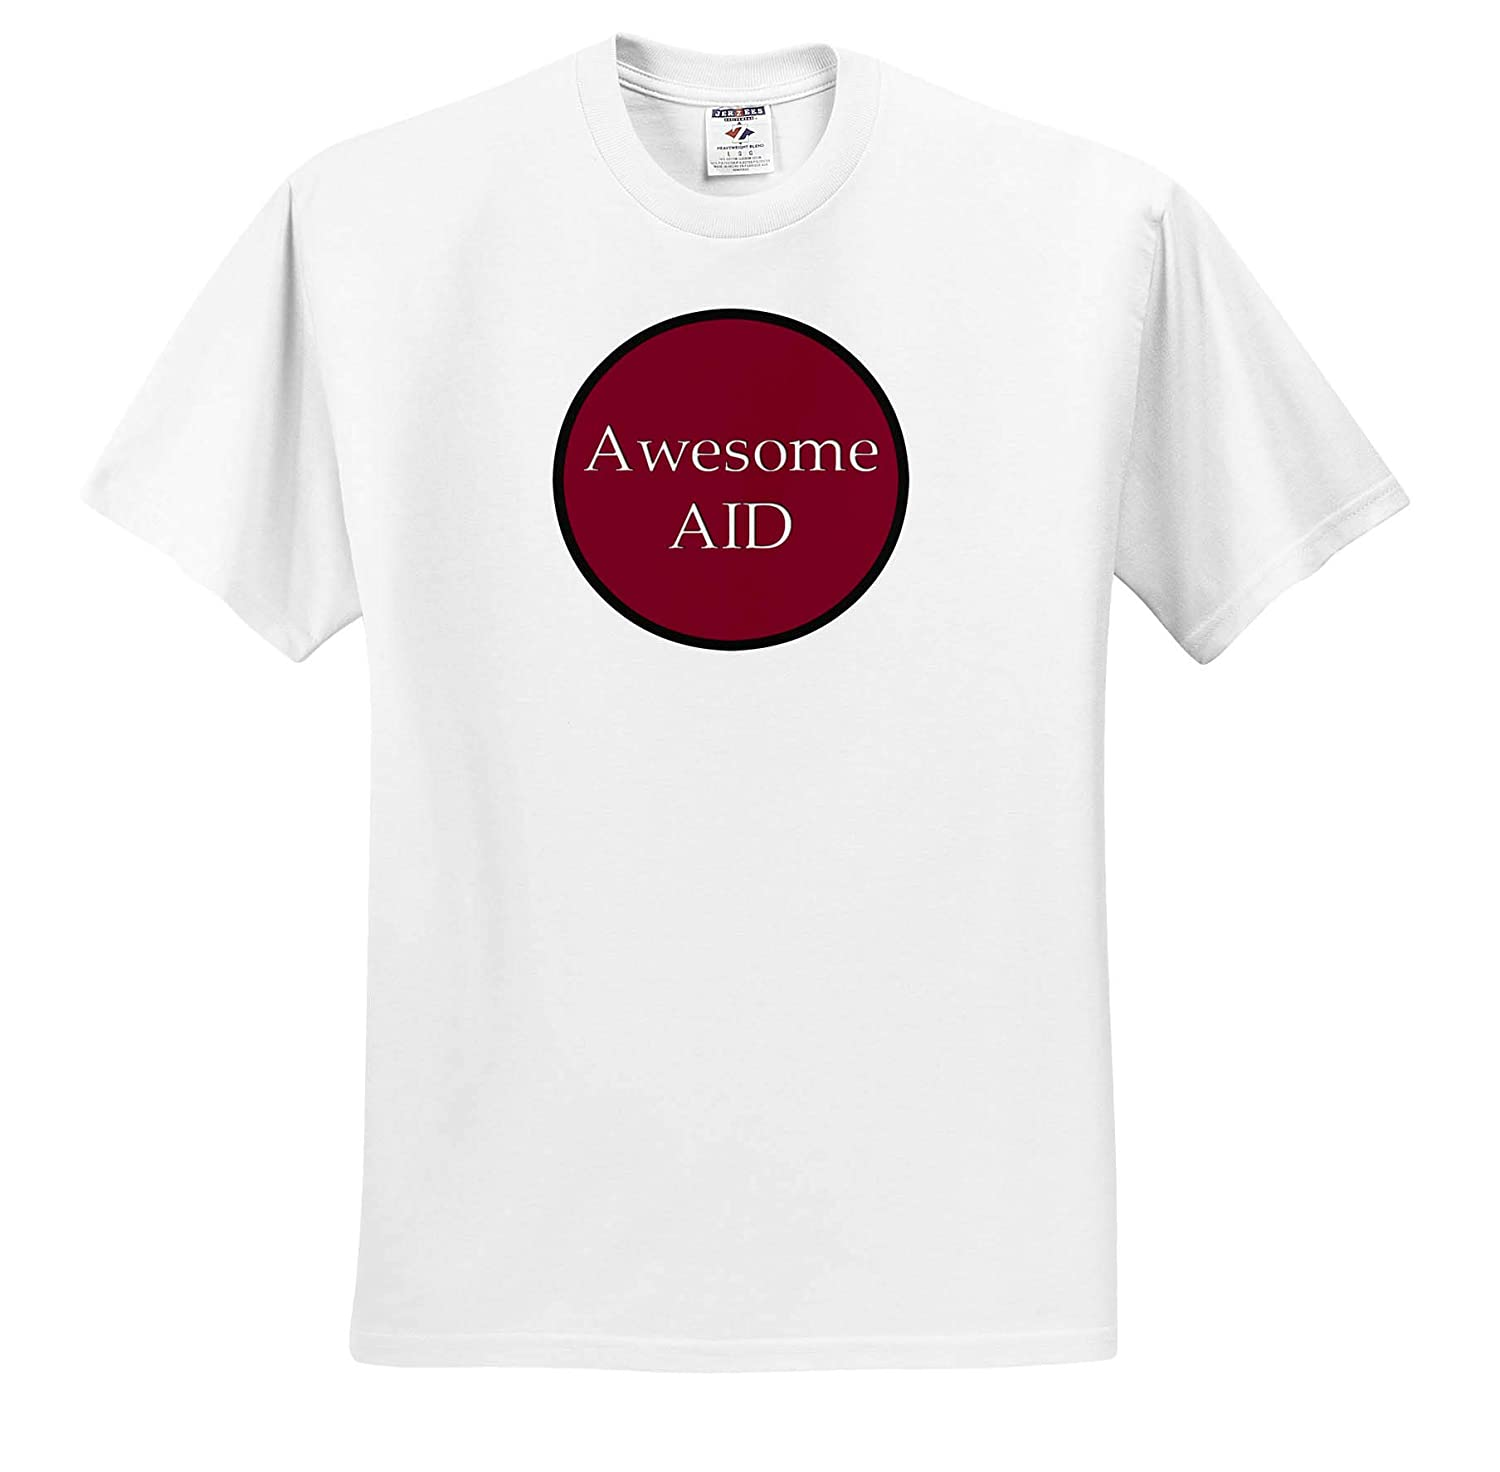 Image of Awesome Aid 3dRose Carrie Merchant Image ts/_309309 Adult T-Shirt XL